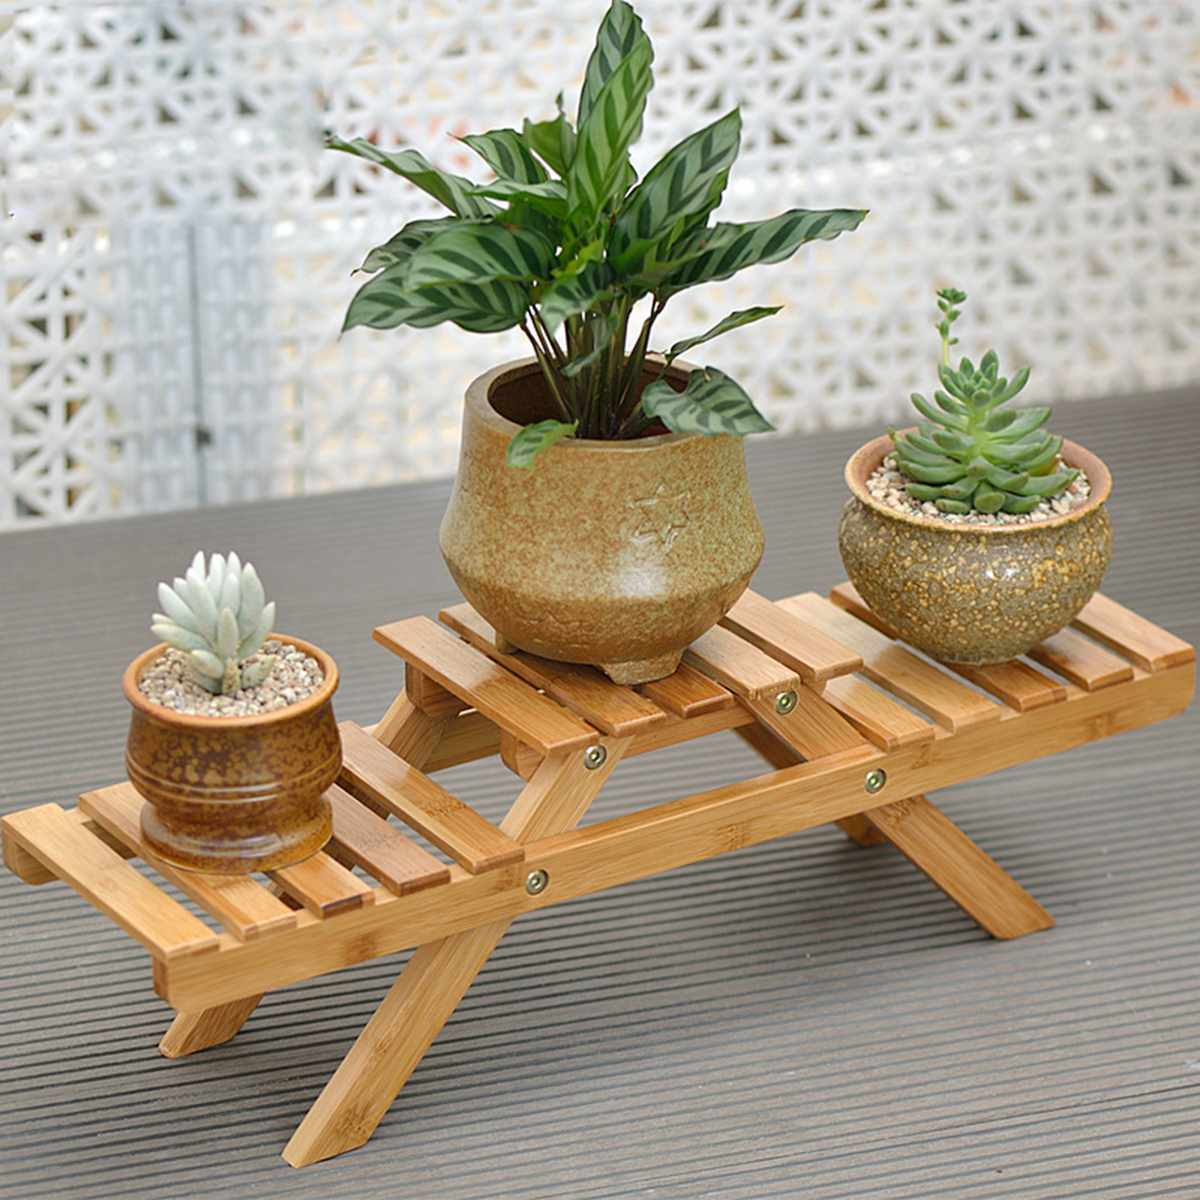 Bamboo Plant Flower Shelf Stand Indoor Or Outdoor Pot Plant Rack Holder Home Decor Buy Plant Stands 1940705